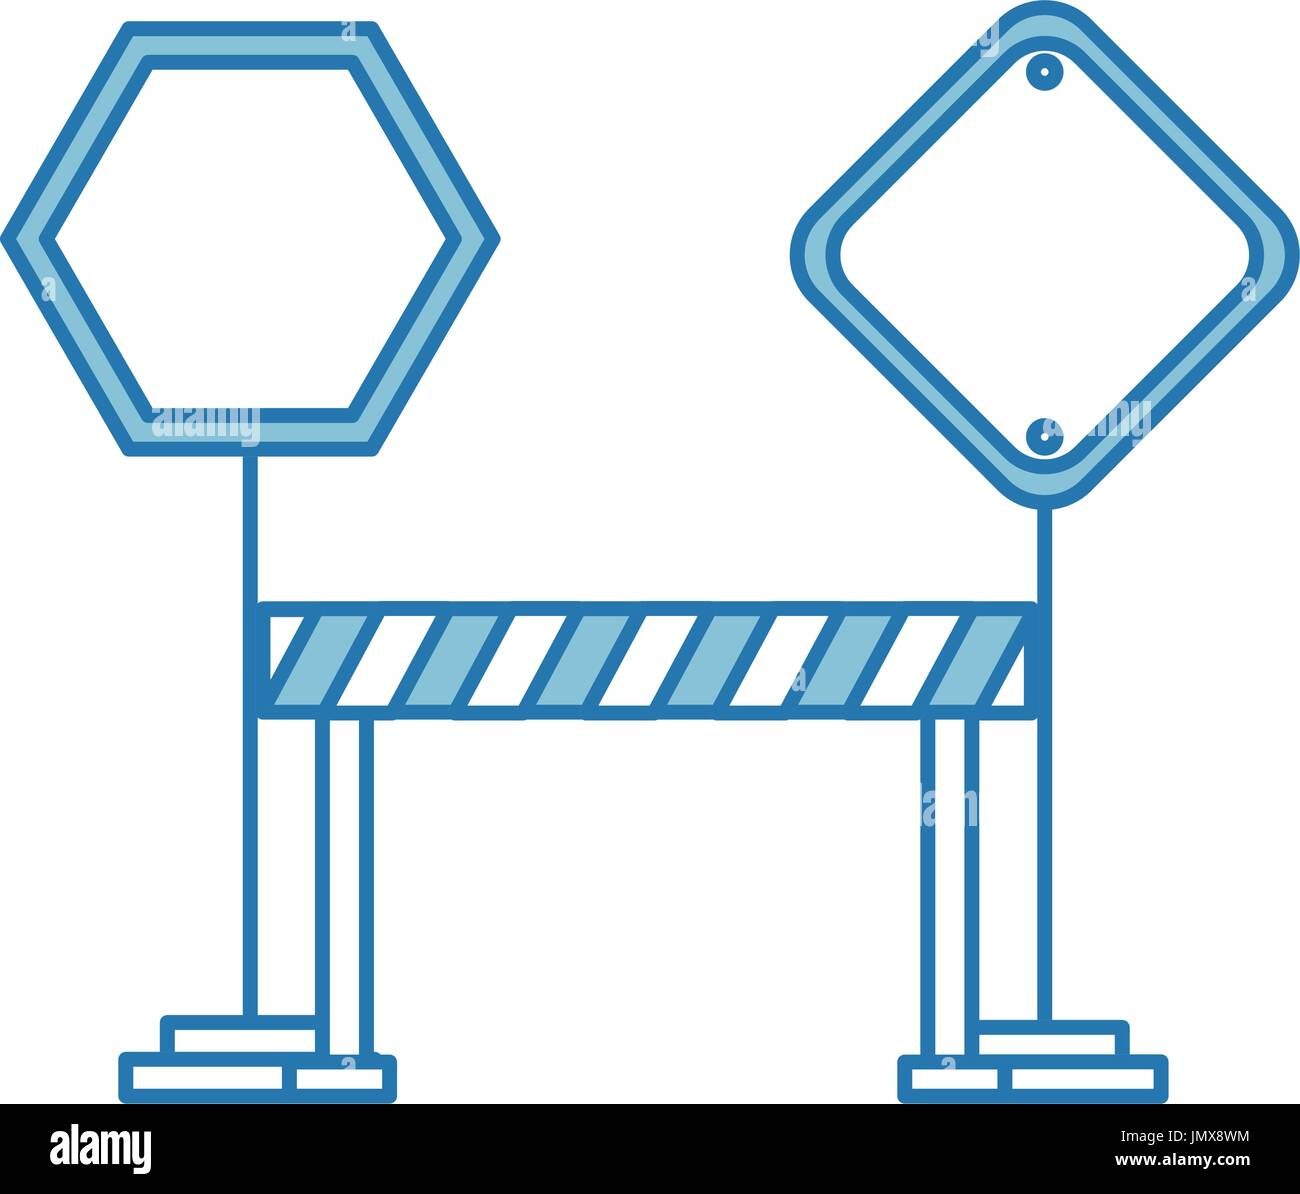 traffic signal with fence - Stock Vector